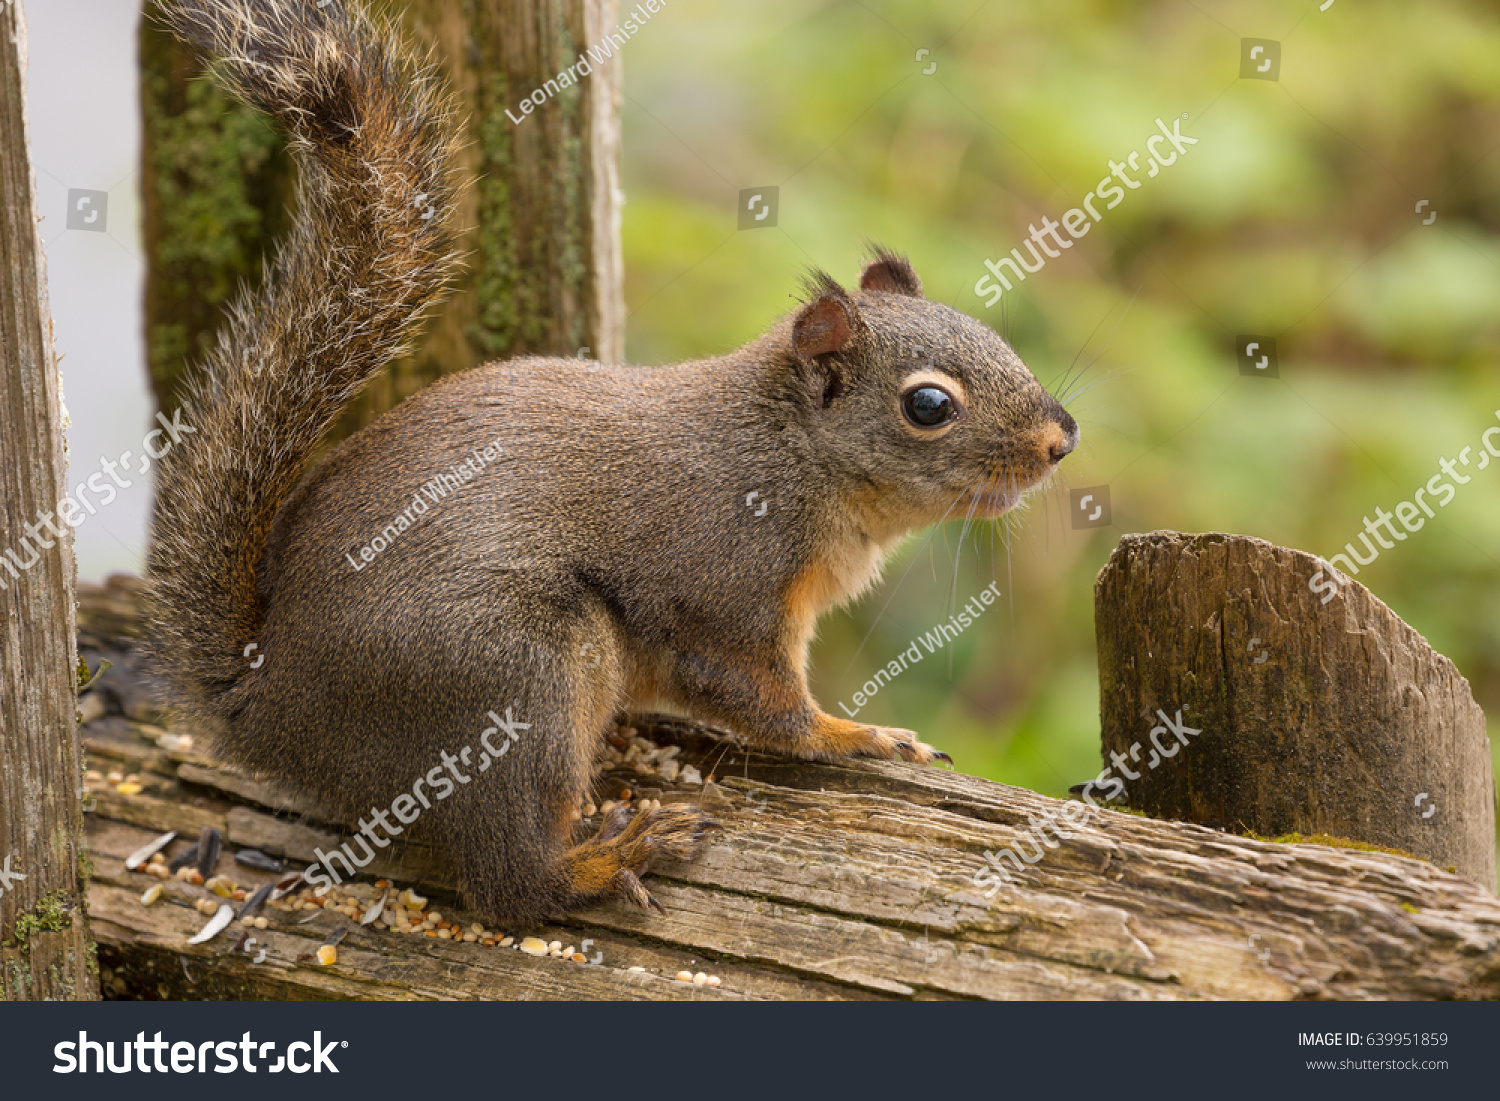 stock-photo-a-squirrel-perched-on-a-post